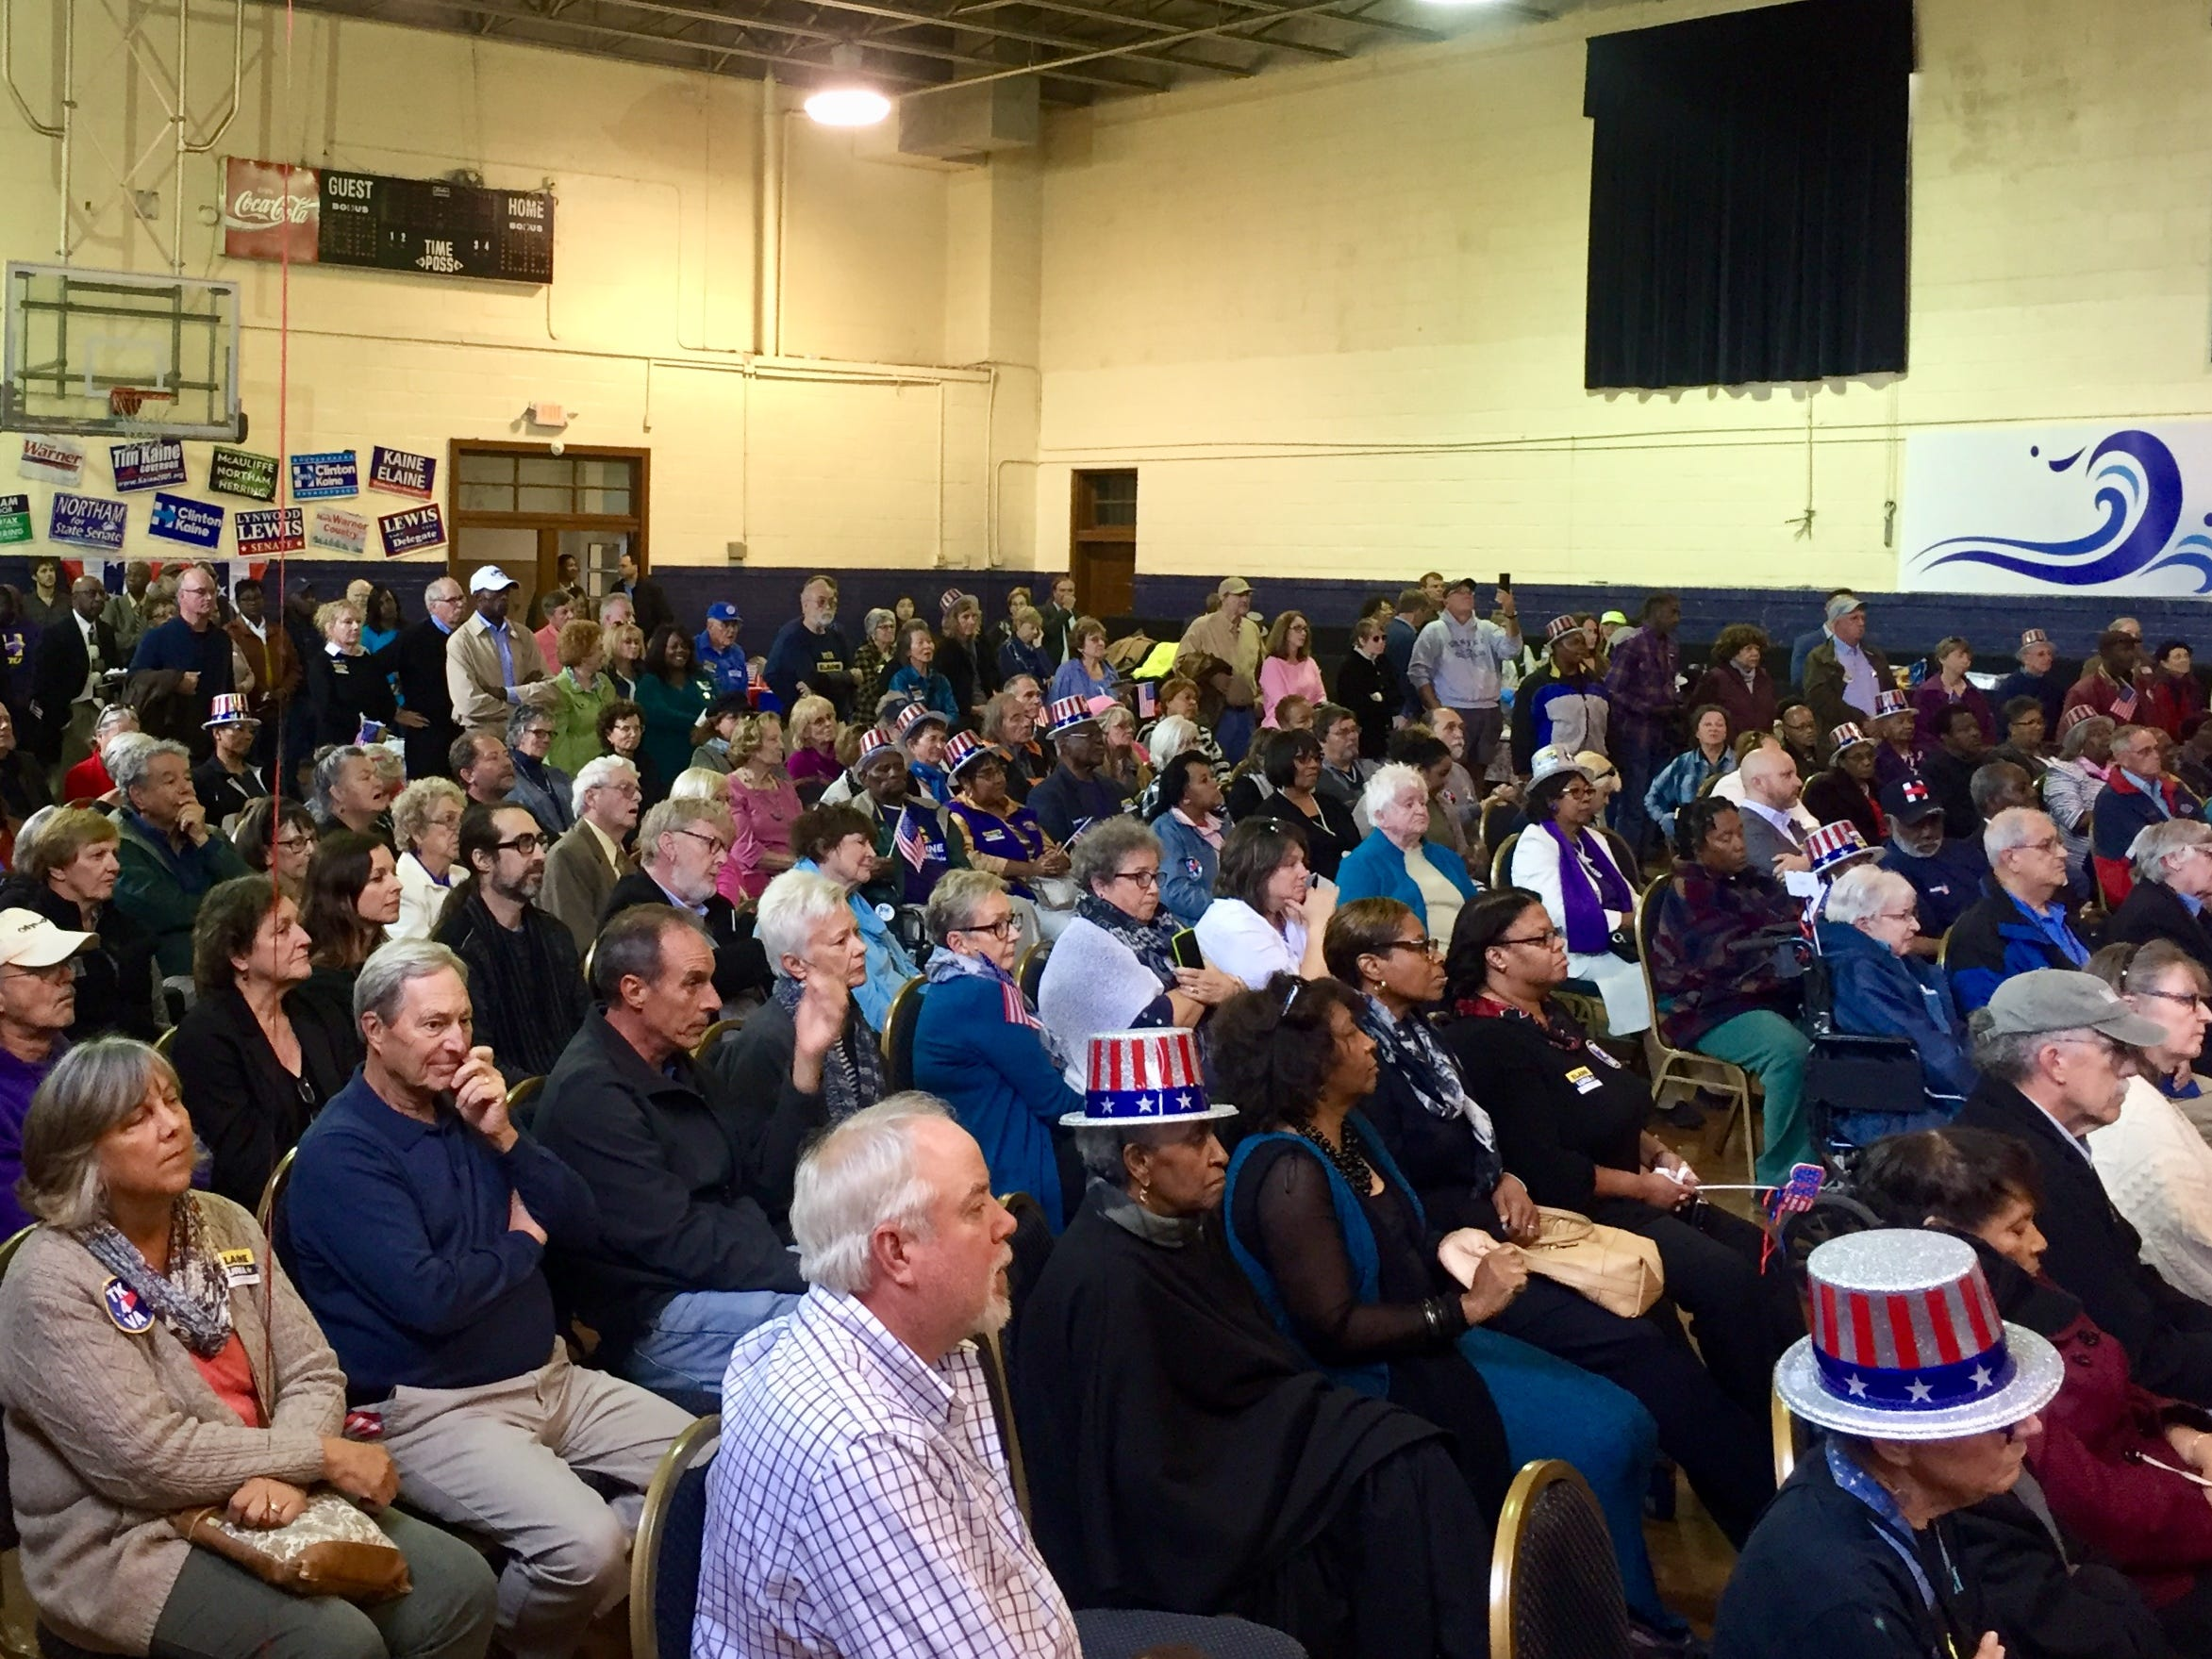 A packed room at the Mary N. Smith Cultural Enrichment Center in Accomac listens to Democratic candidates at a rally on Oct. 21.